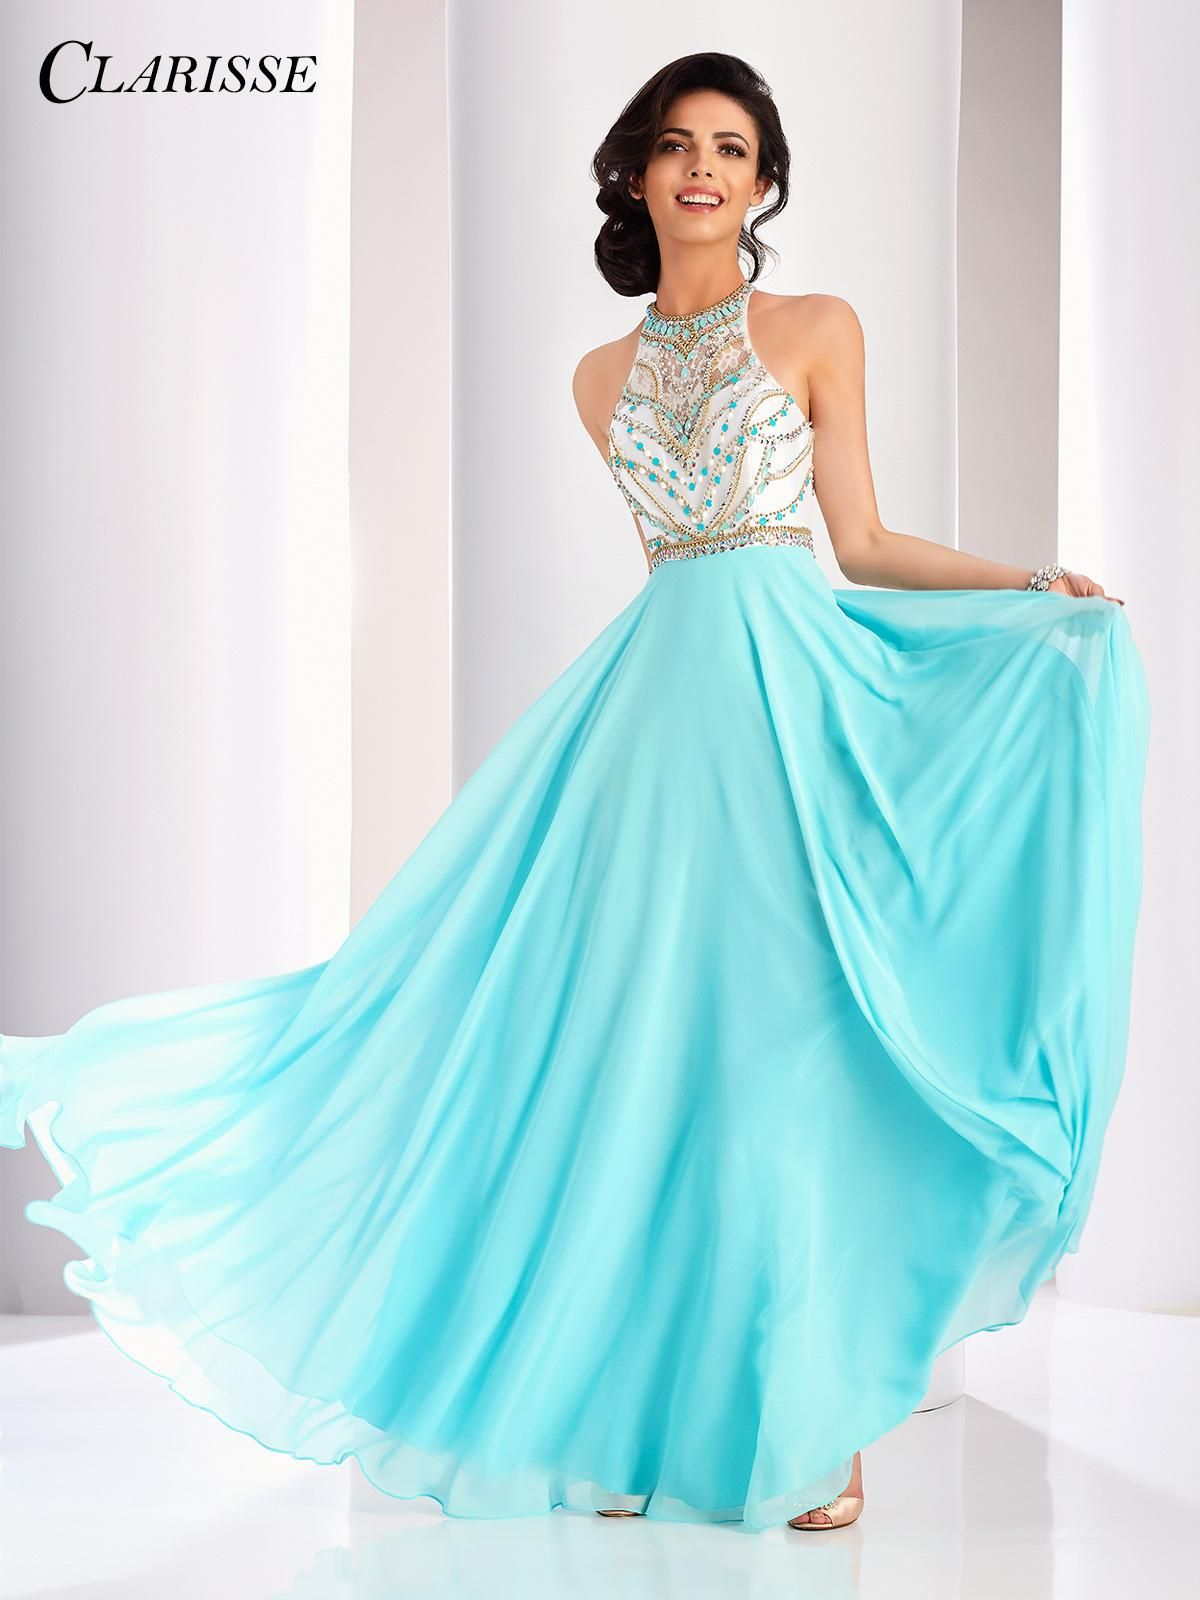 Pin by Livi Parkin on prom dresses | Pinterest | Prom, Halter gown ...